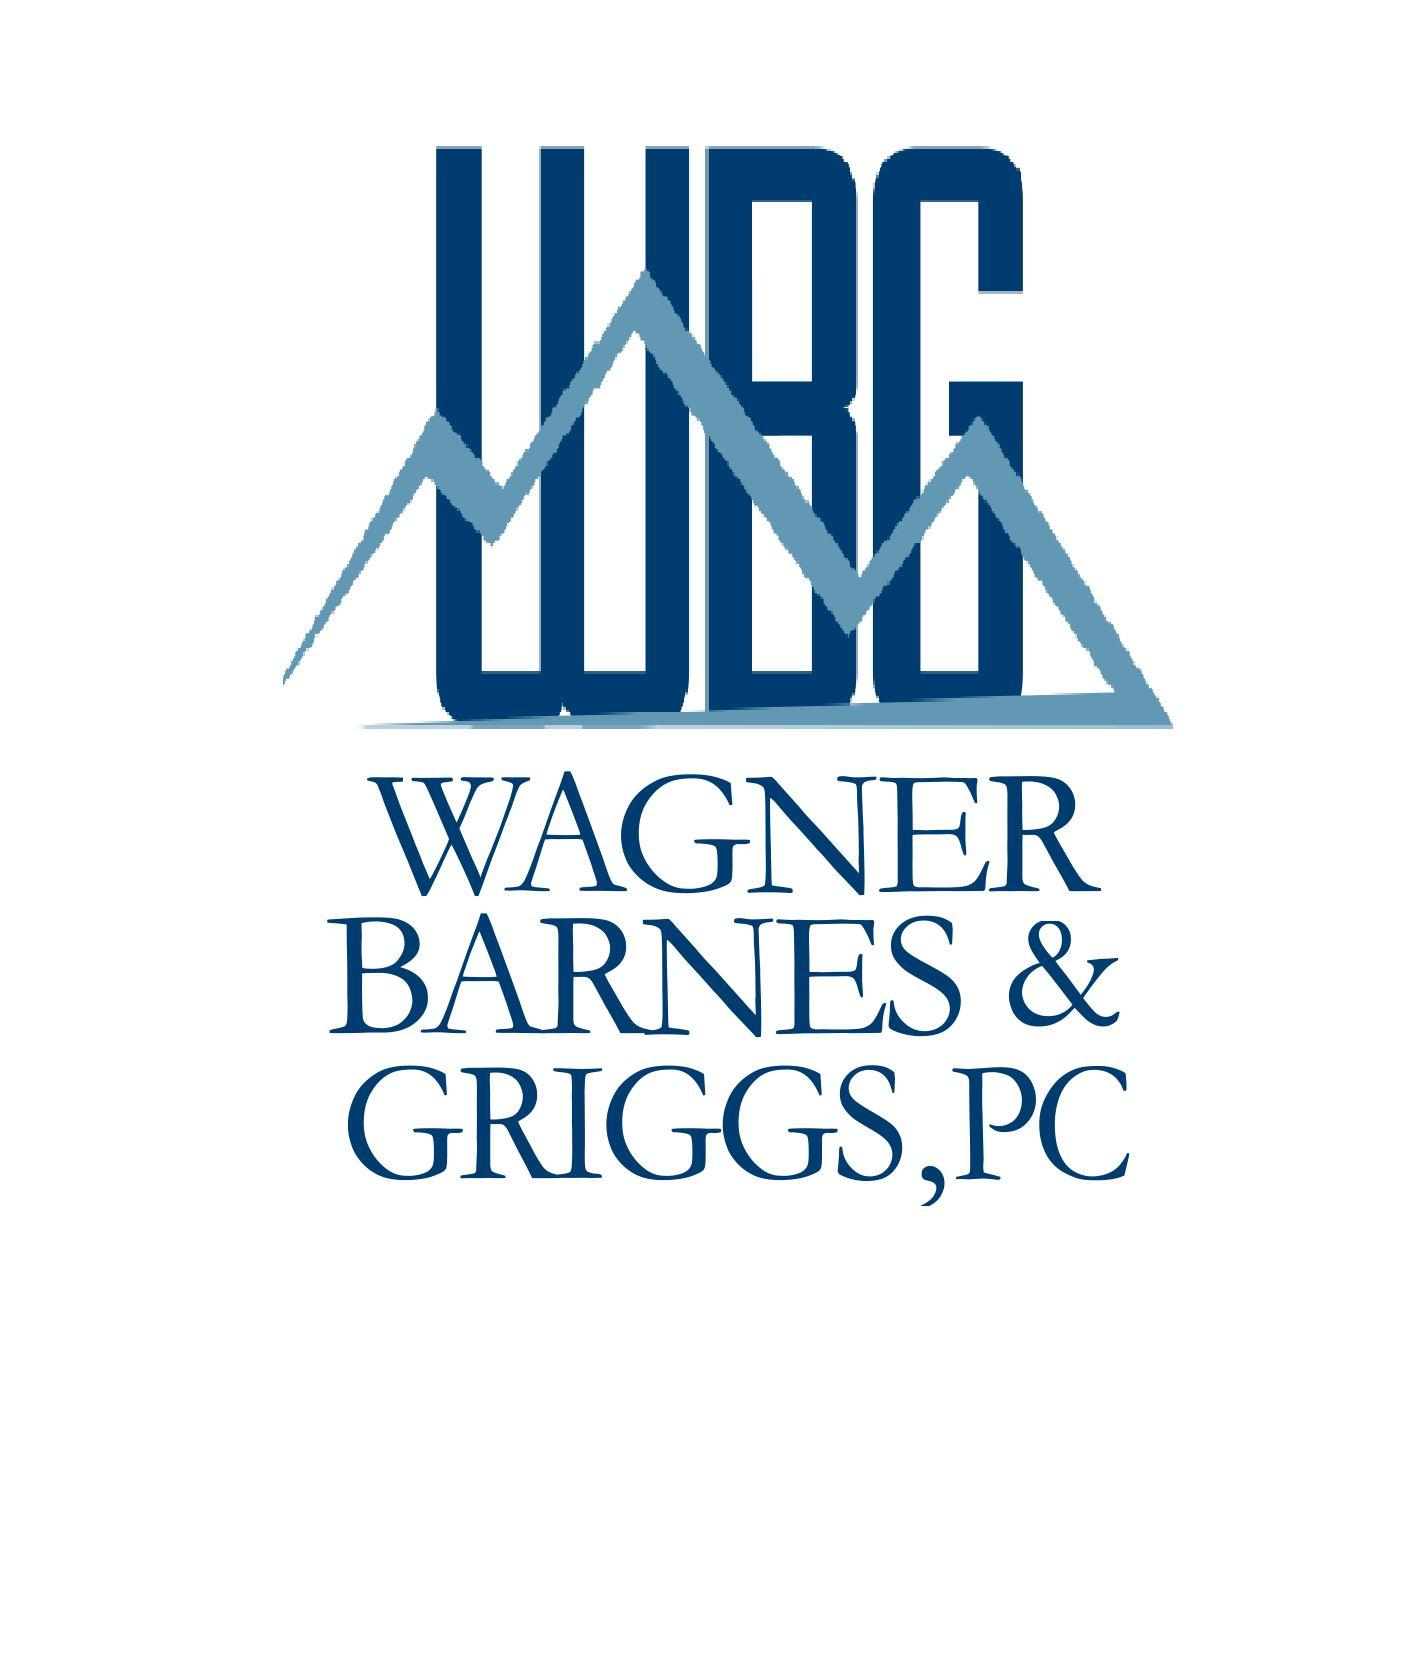 Wagner Barnes and Griggs PC